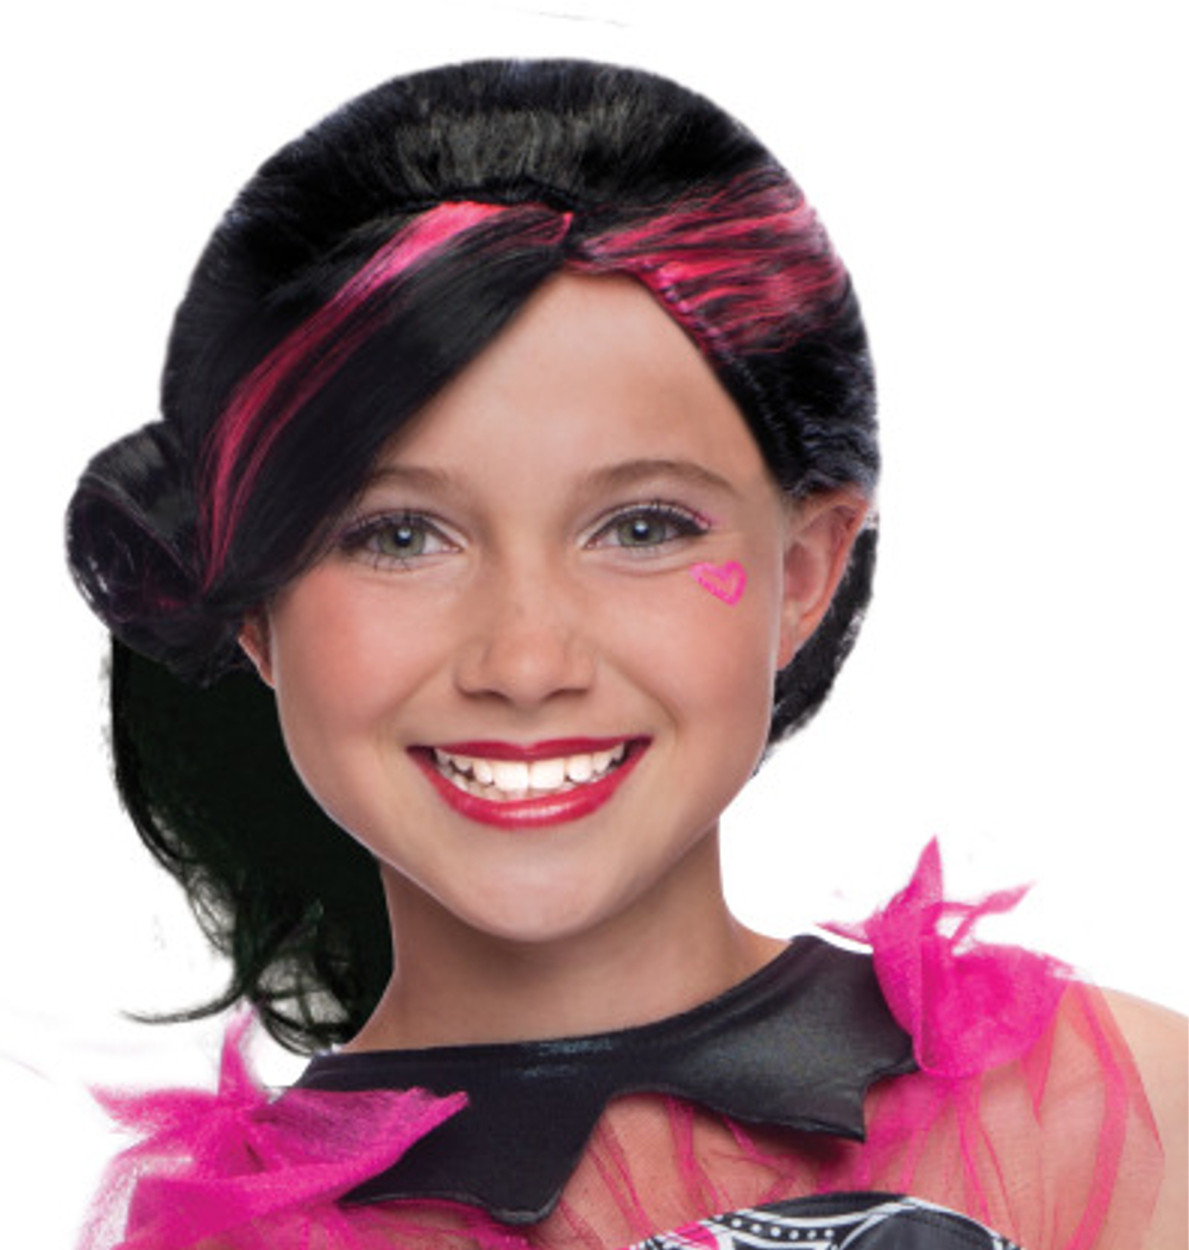 Girls Draculaura Black And Pink Wig Costume Accessory